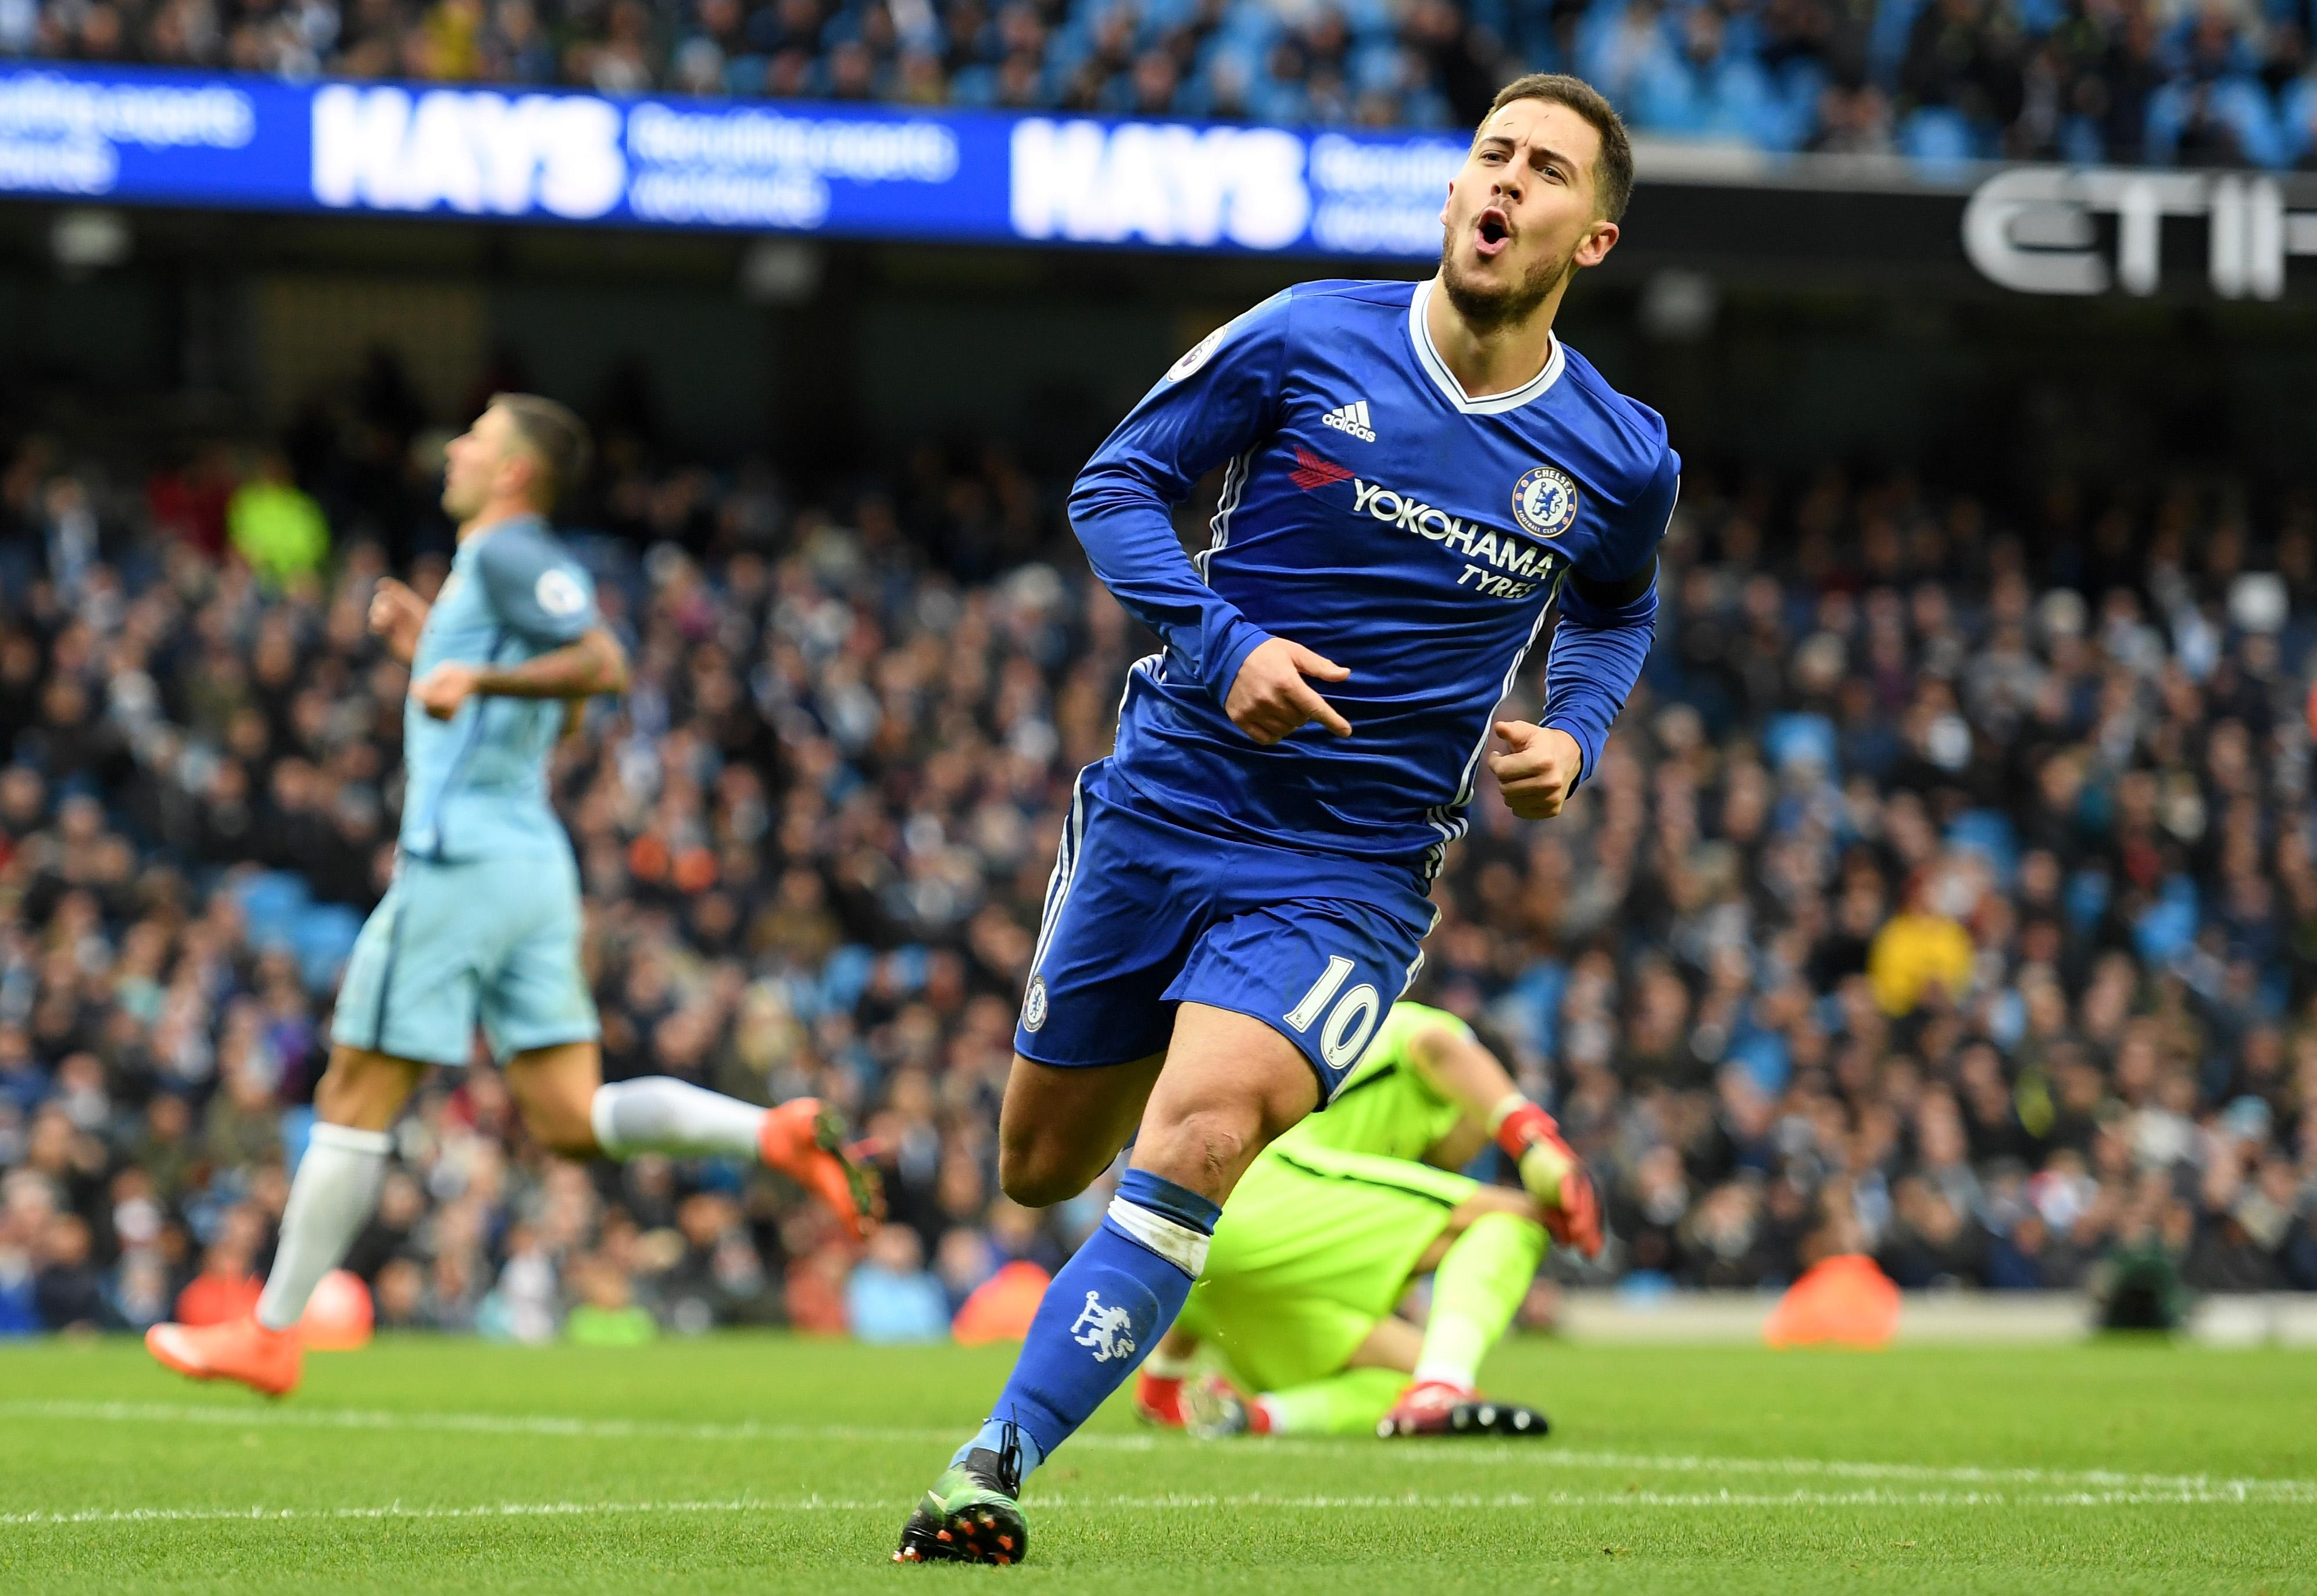 Hazard: It's Time For Chelsea To Win The Champions League Again